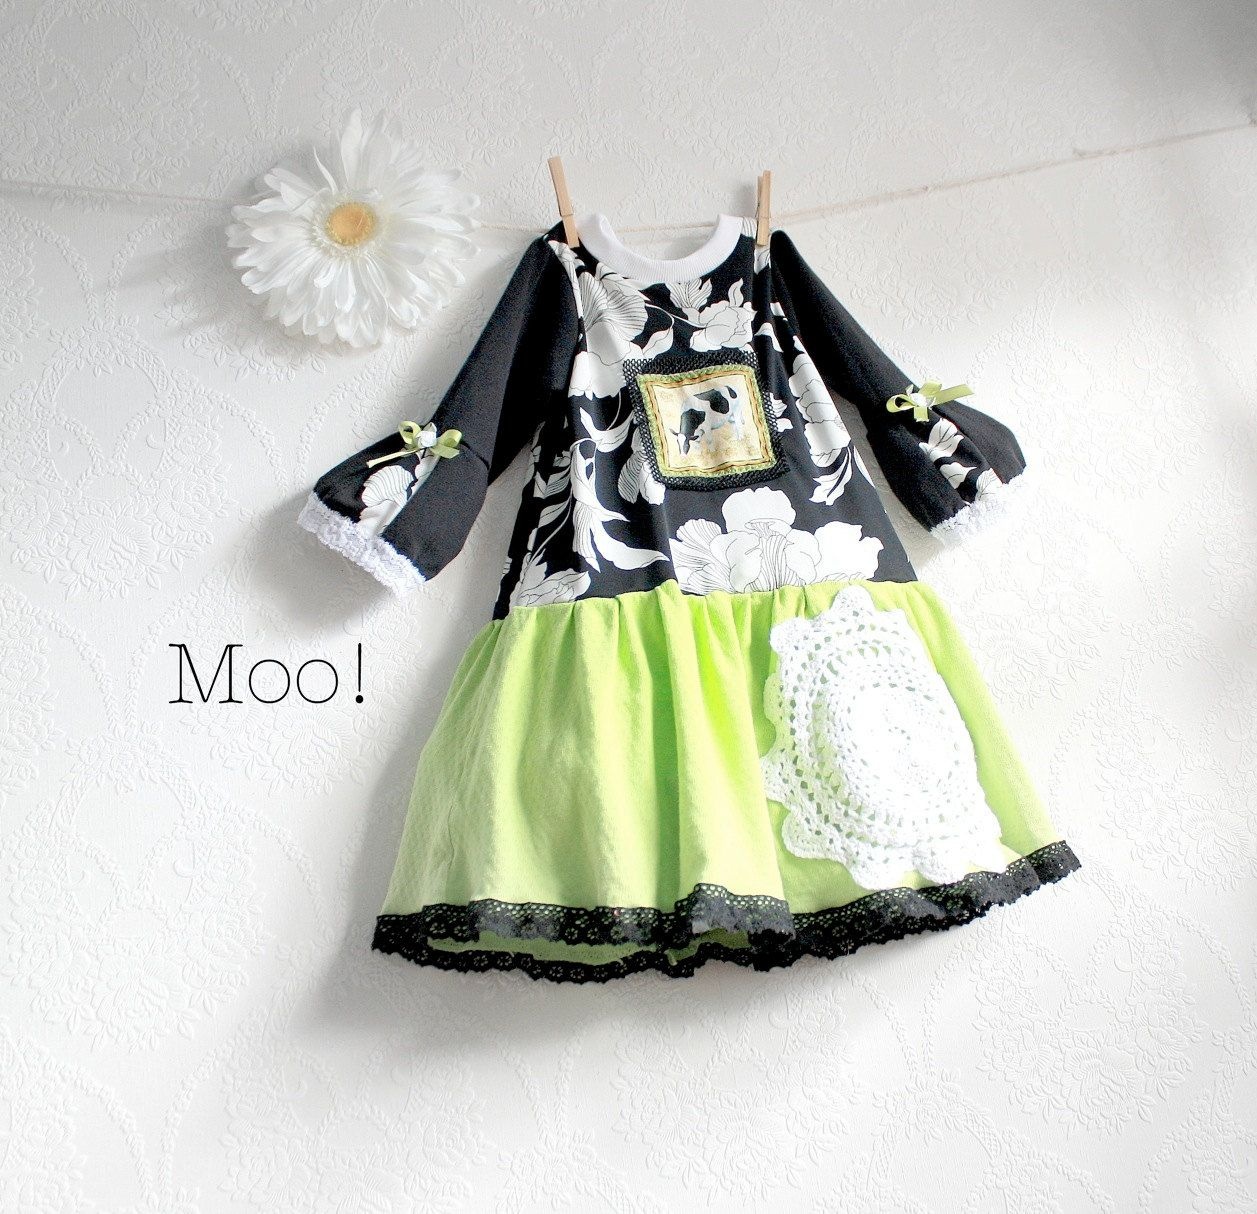 Little Girl S Dress 4t Black And White Lime Green Toddler Jumper Kids Outfits Clothes Recycle Clothes [ 1214 x 1257 Pixel ]